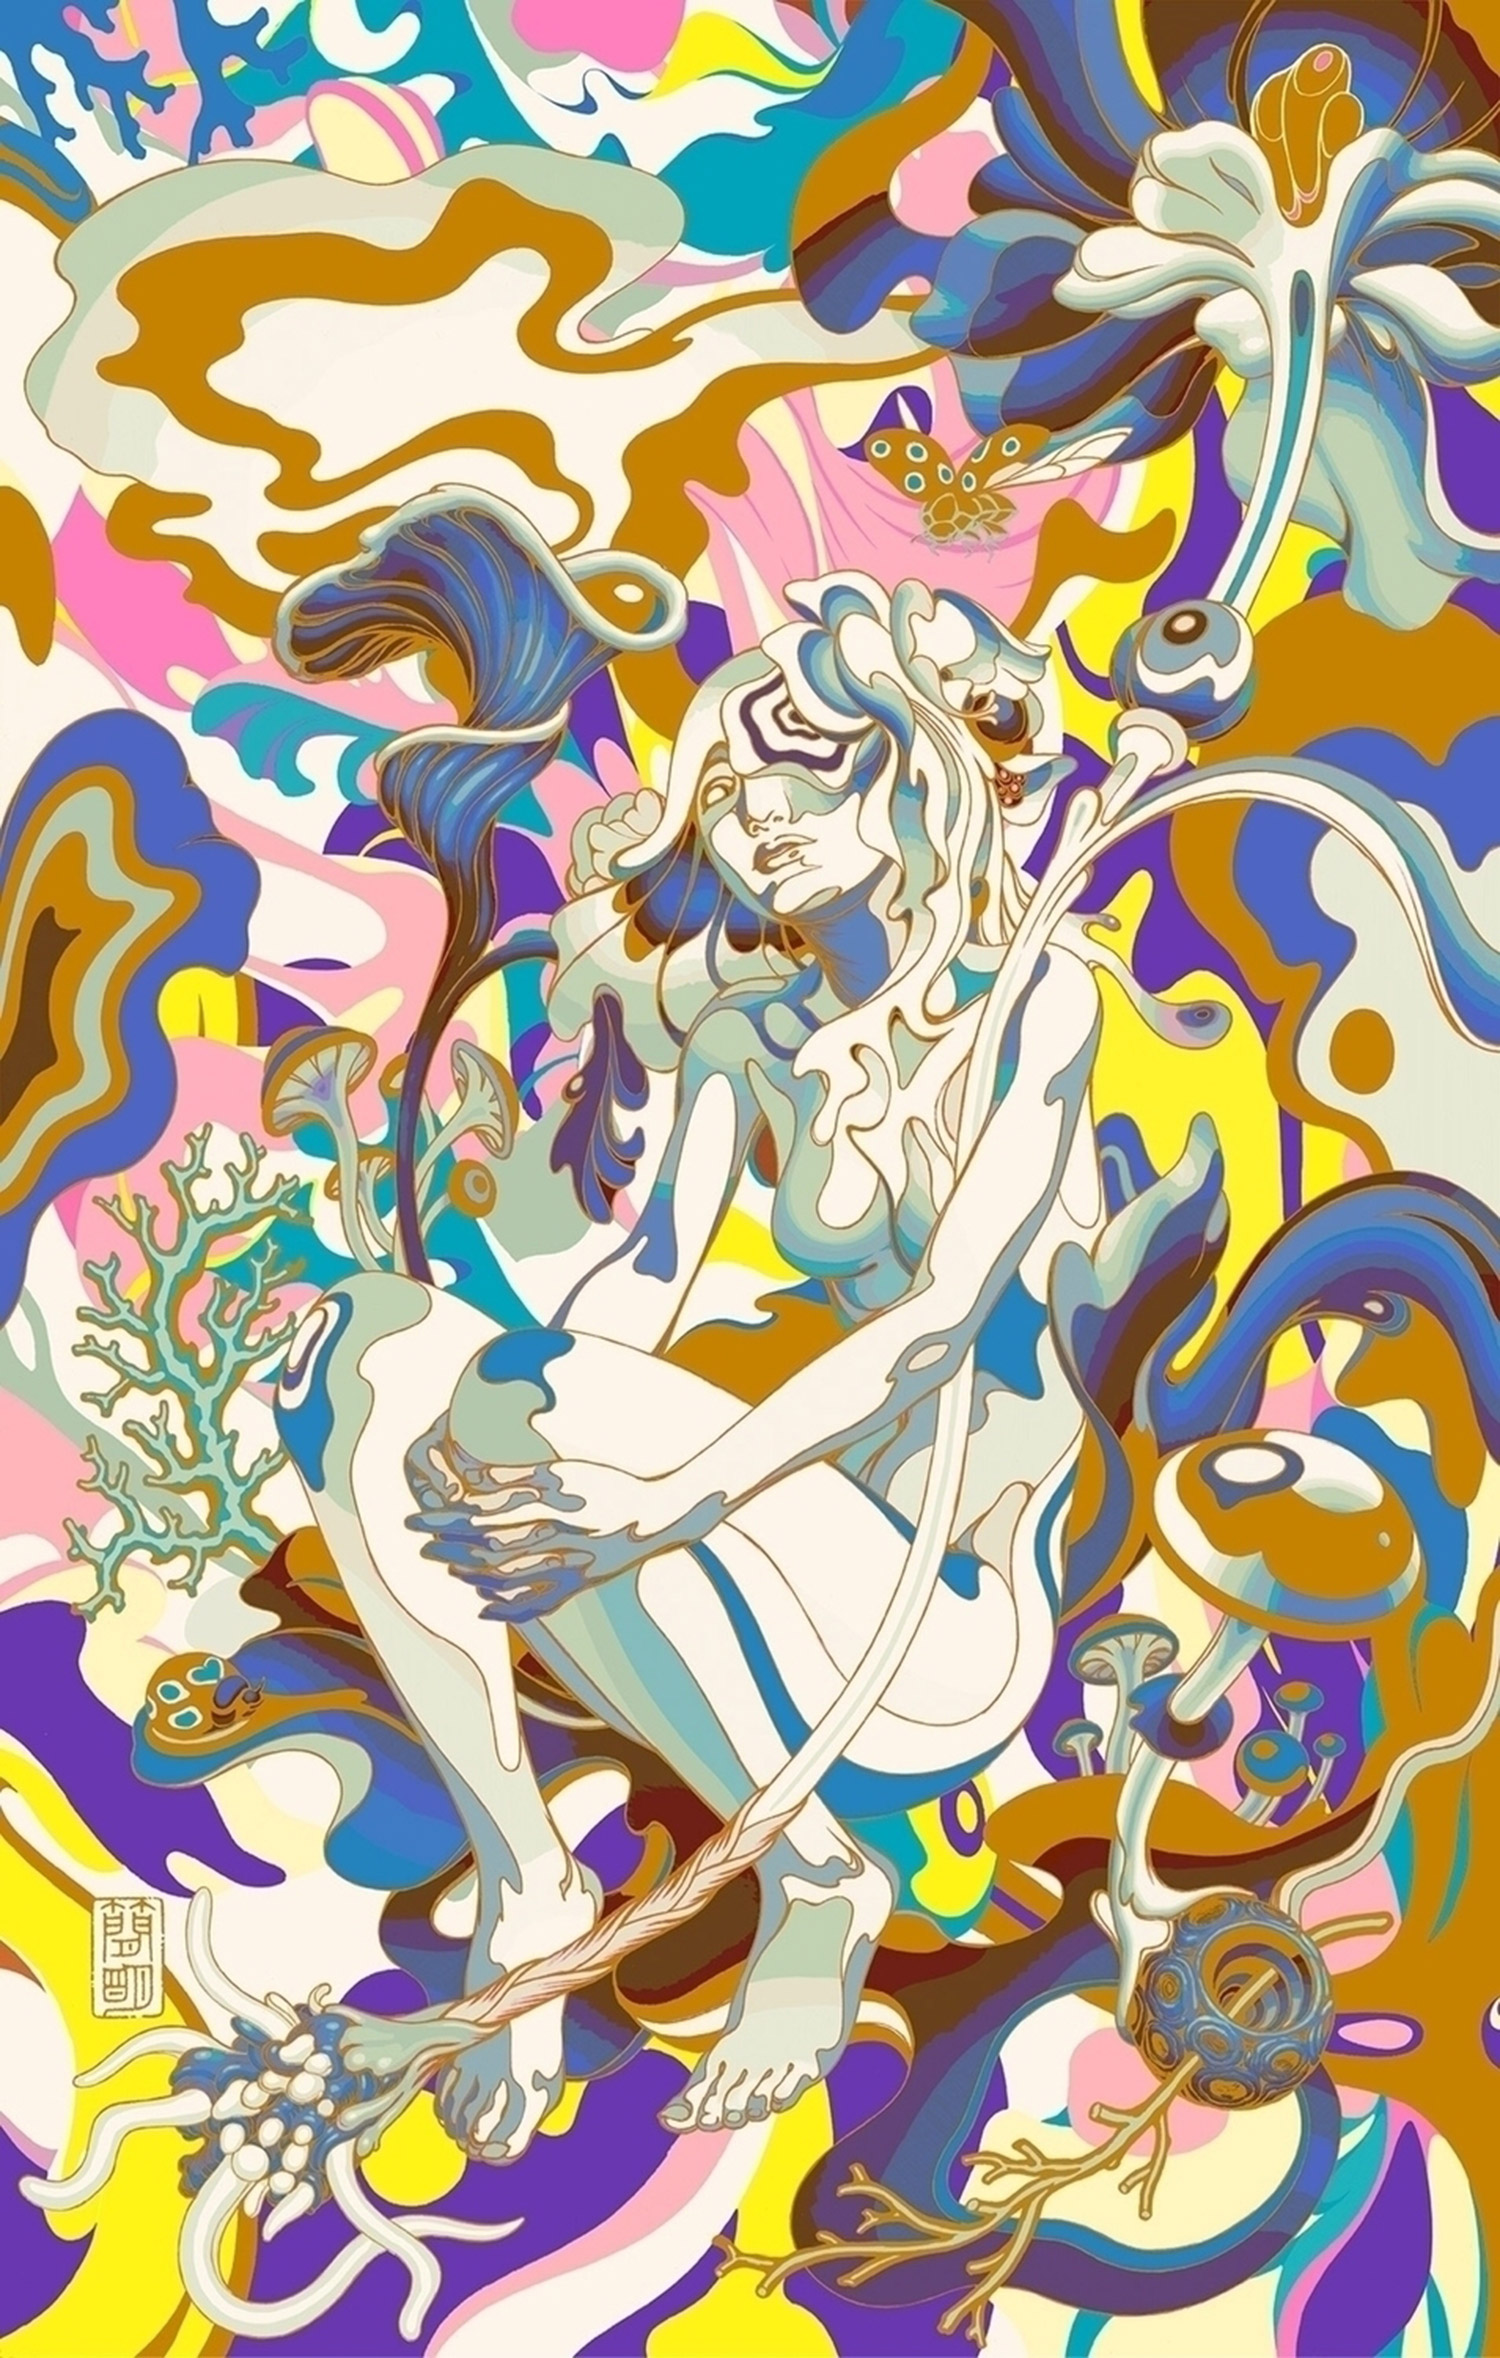 James Jean - Dolly Varden, color phase